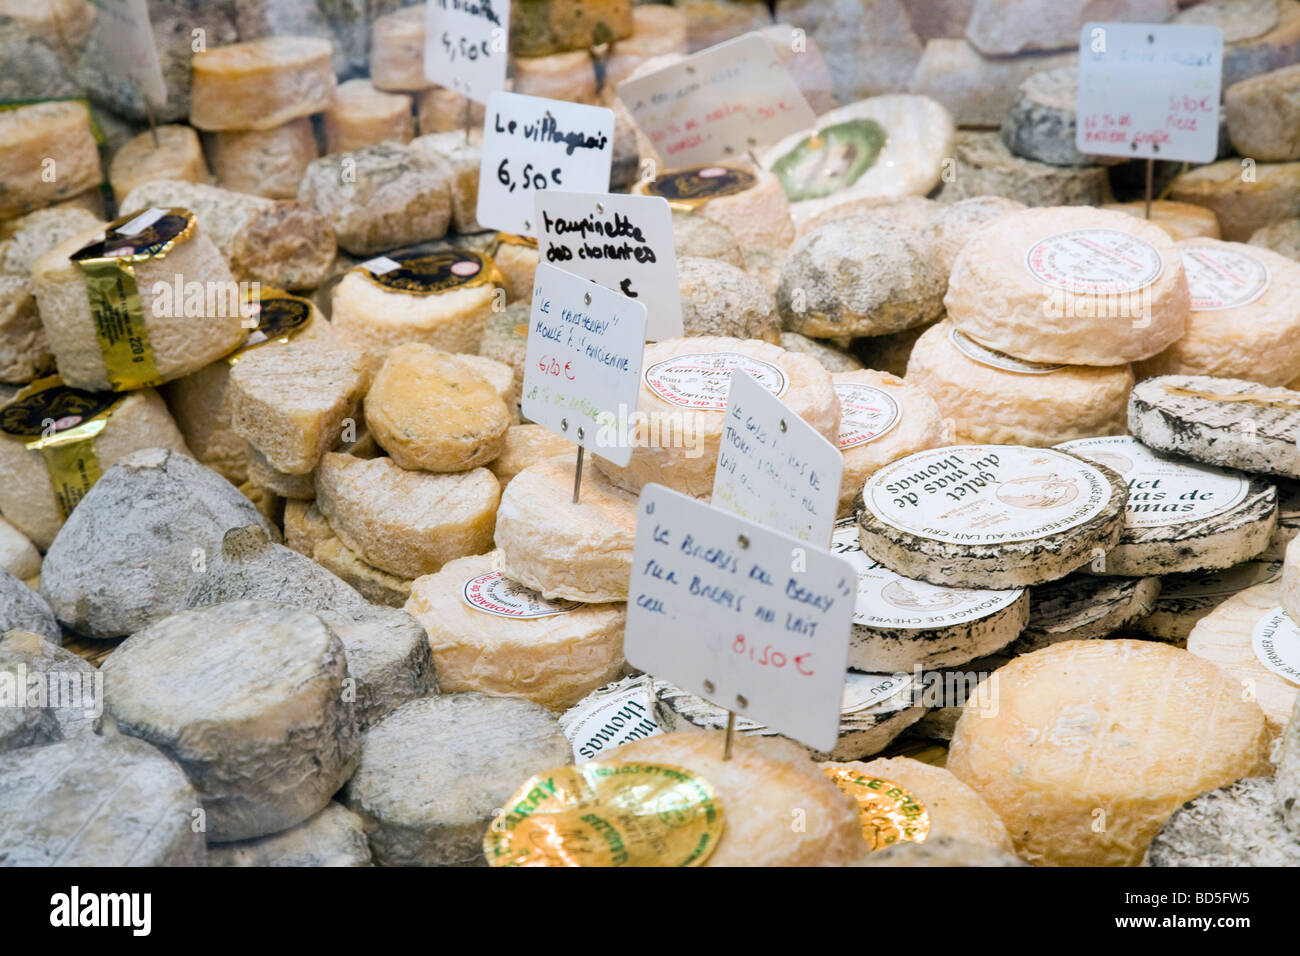 Fromagerie shop window, Paris - Stock Image